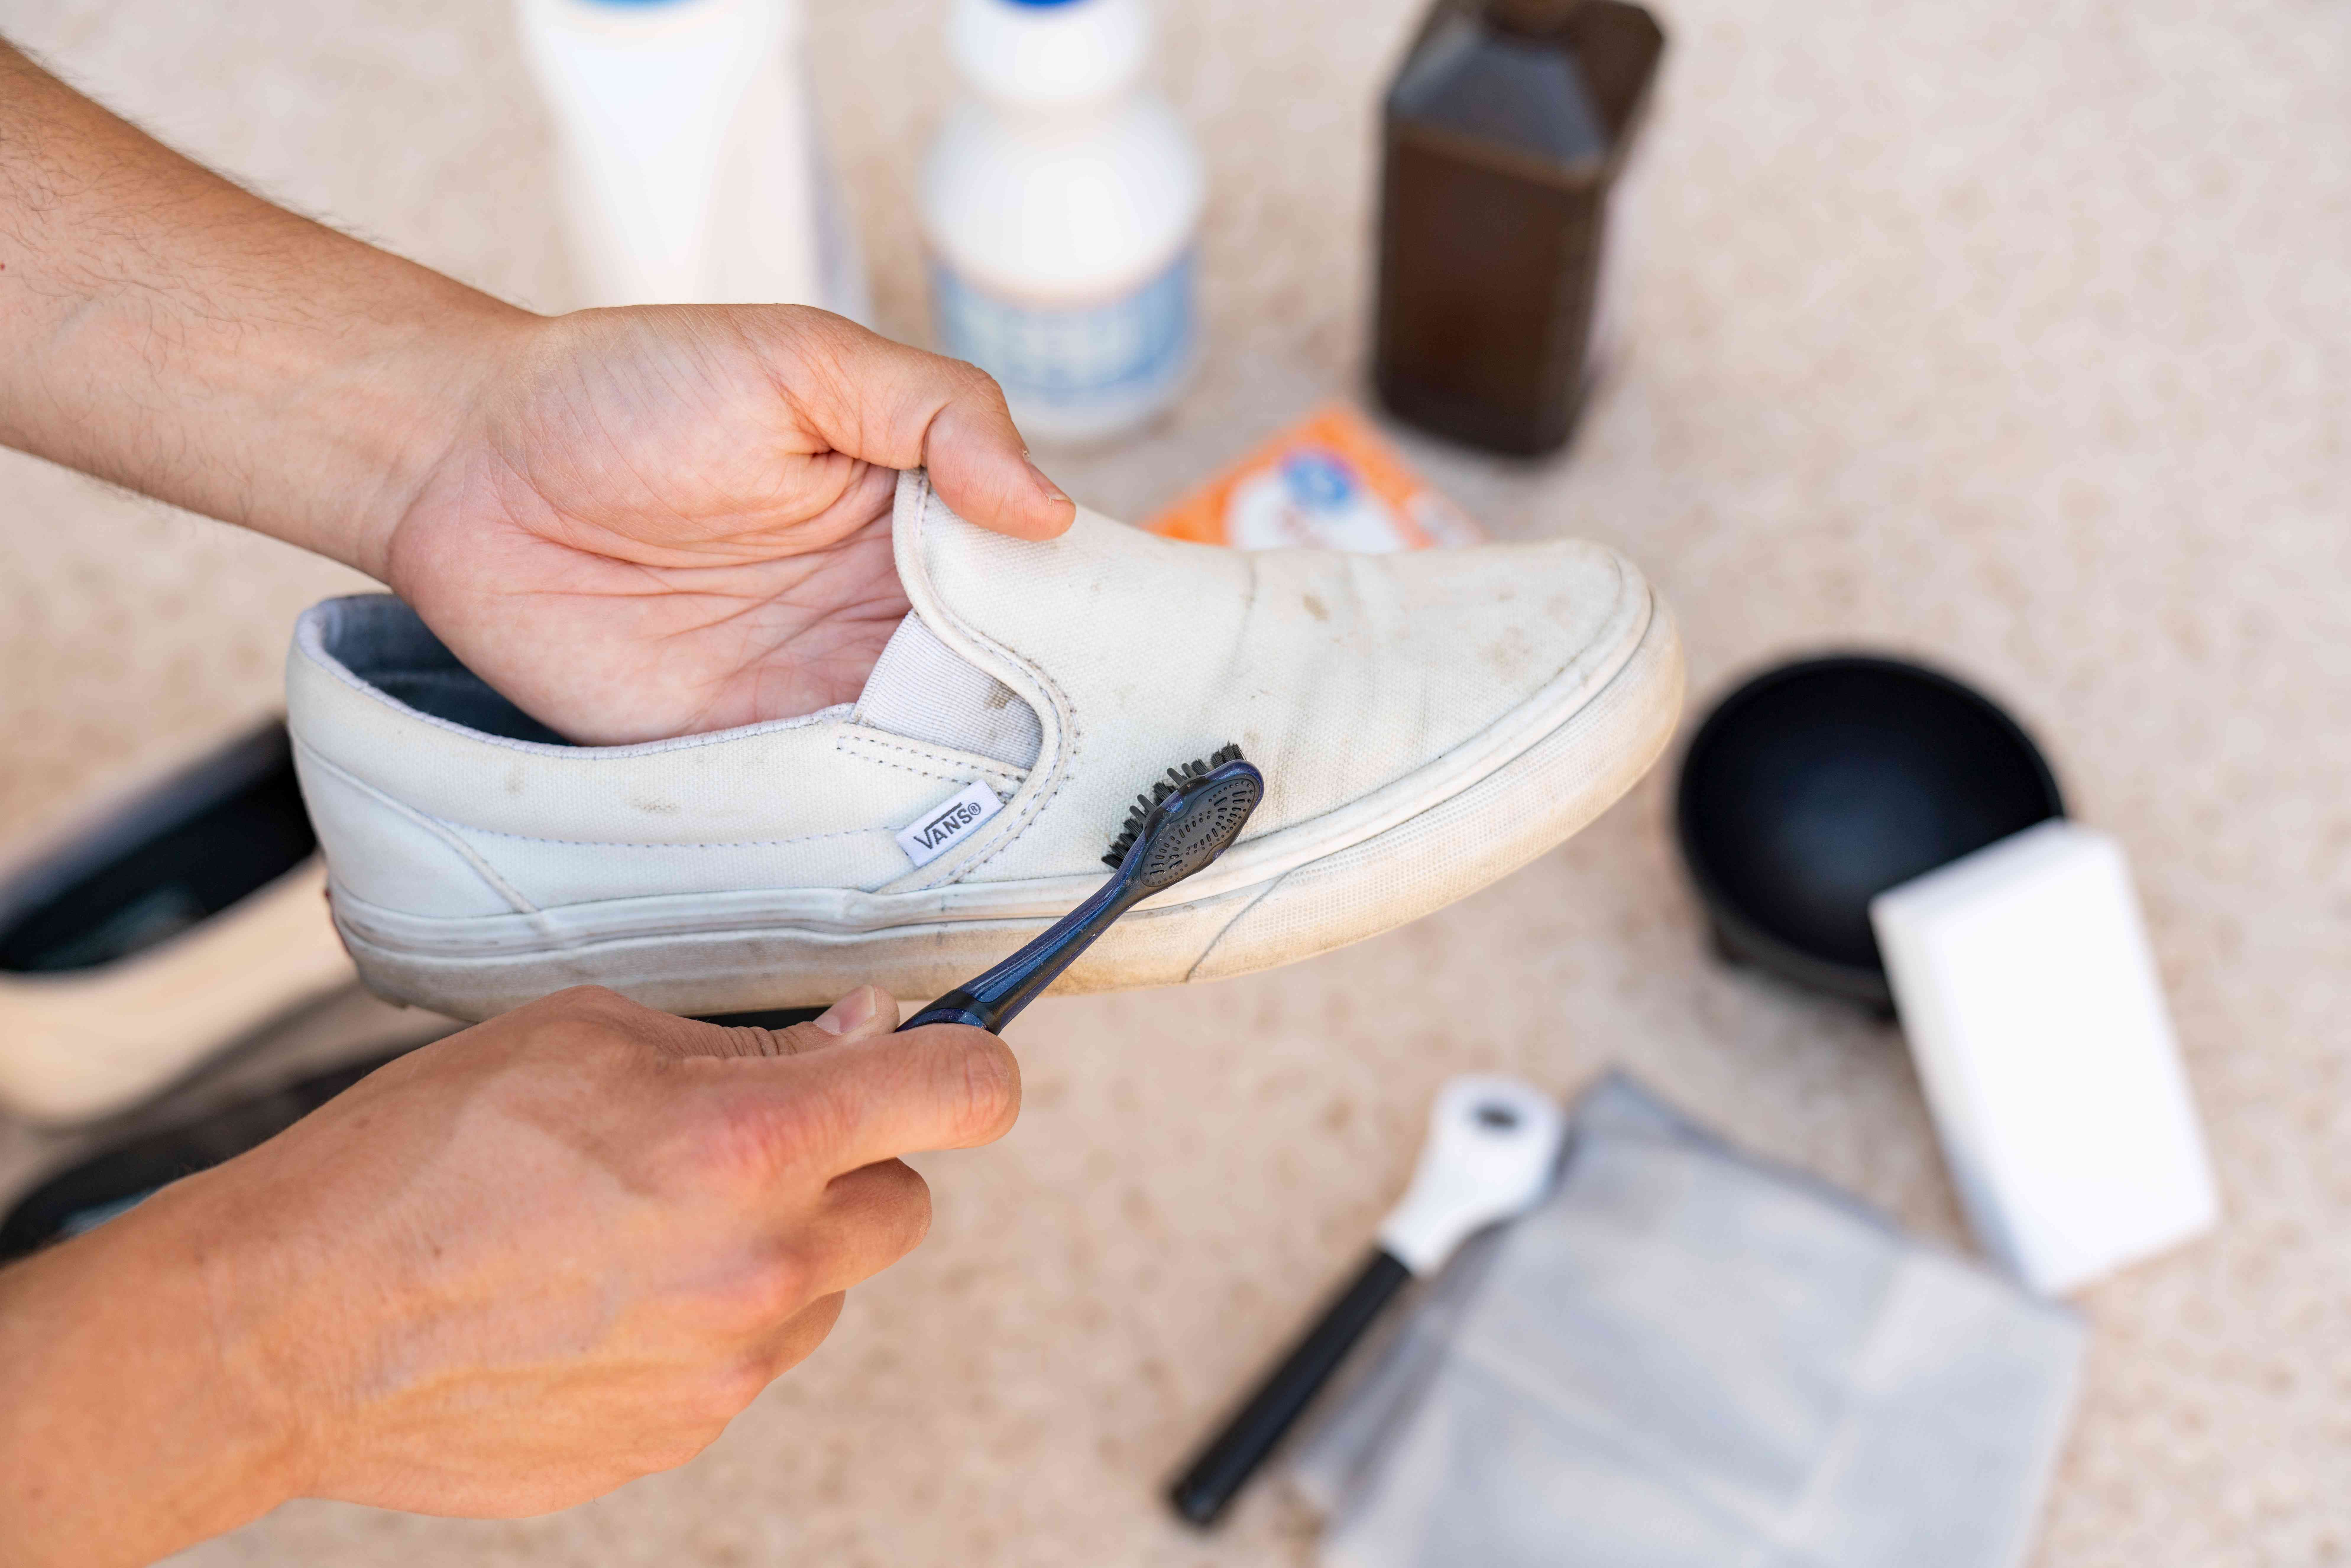 Dirty white vans fabric scrubbed by toothbrush to remove dust layer